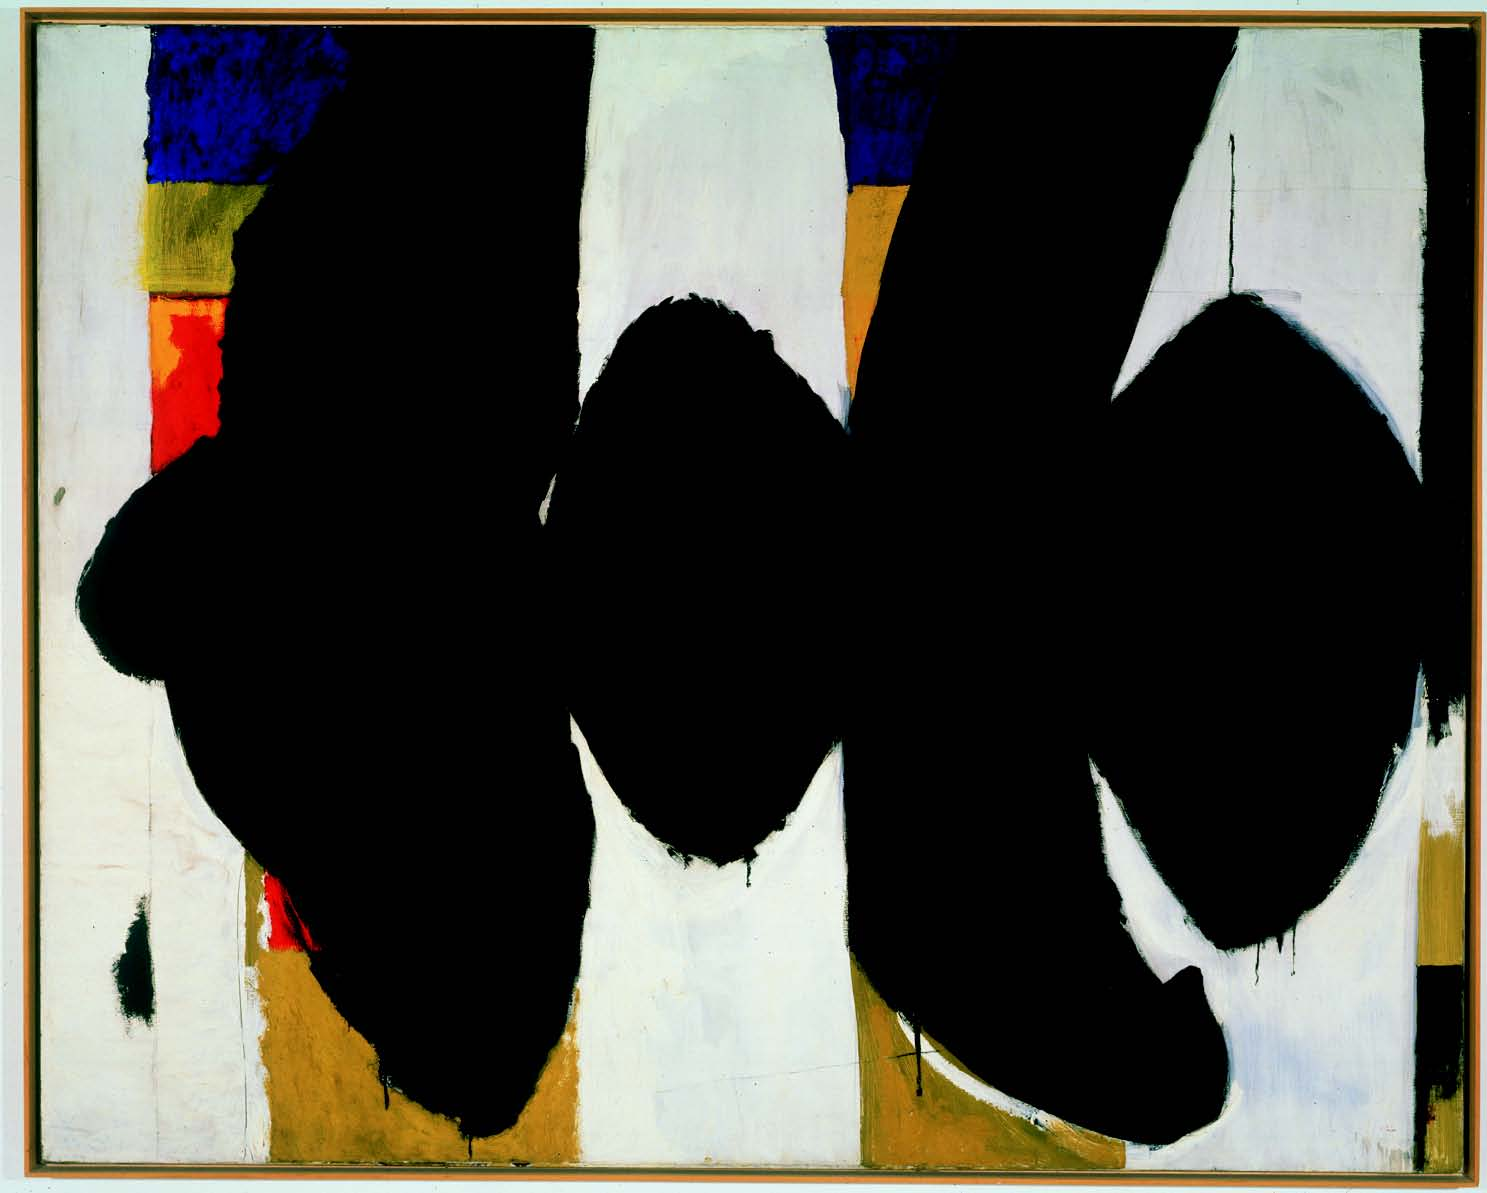 Elegy to the Spanish Republic No. 34 by Robert Motherwell (1953-54)